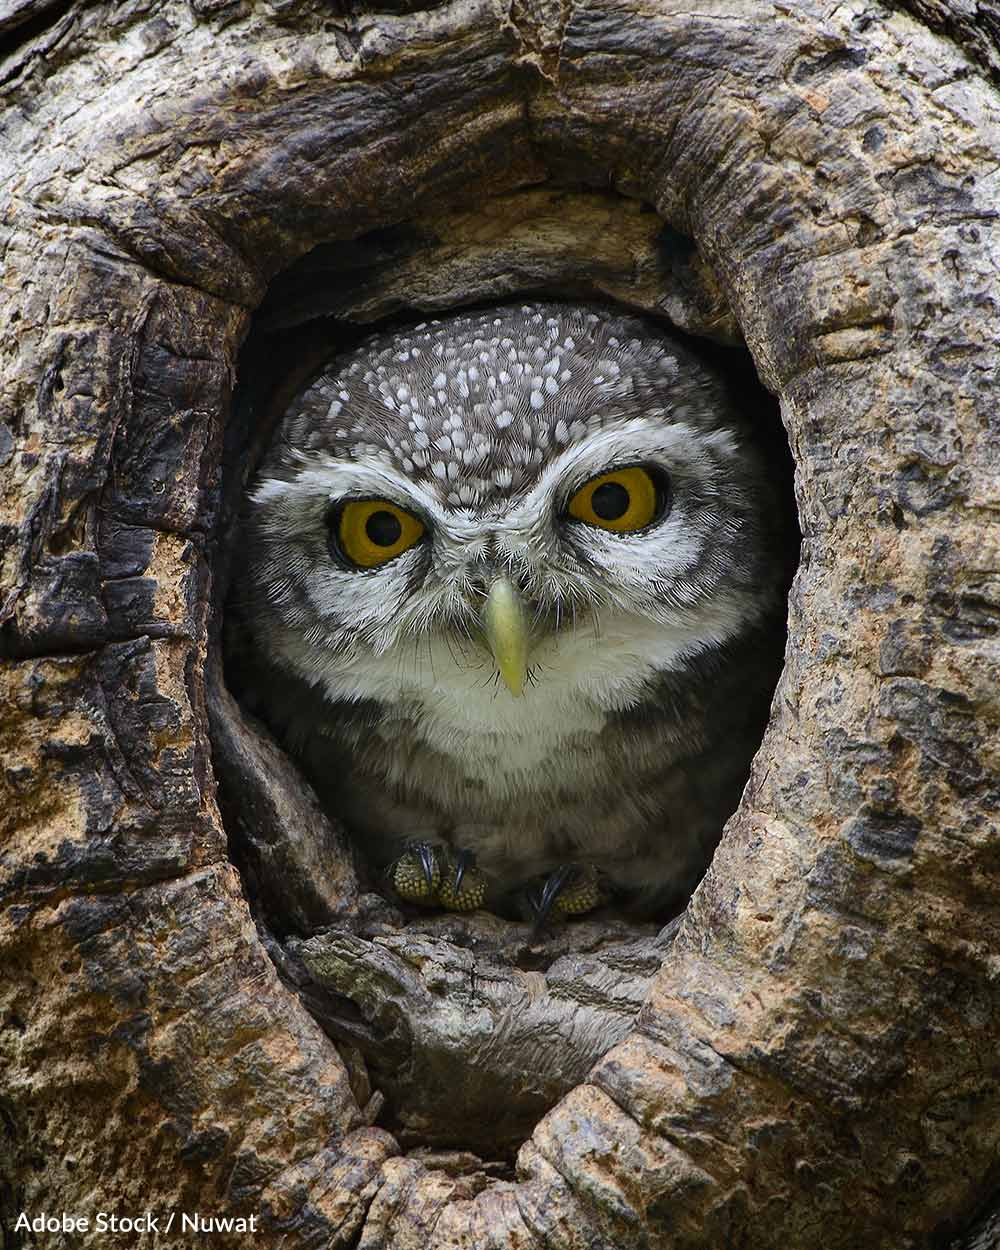 3.4 Million Acres Of Spotted Owl Habitat Could Soon Be Restored